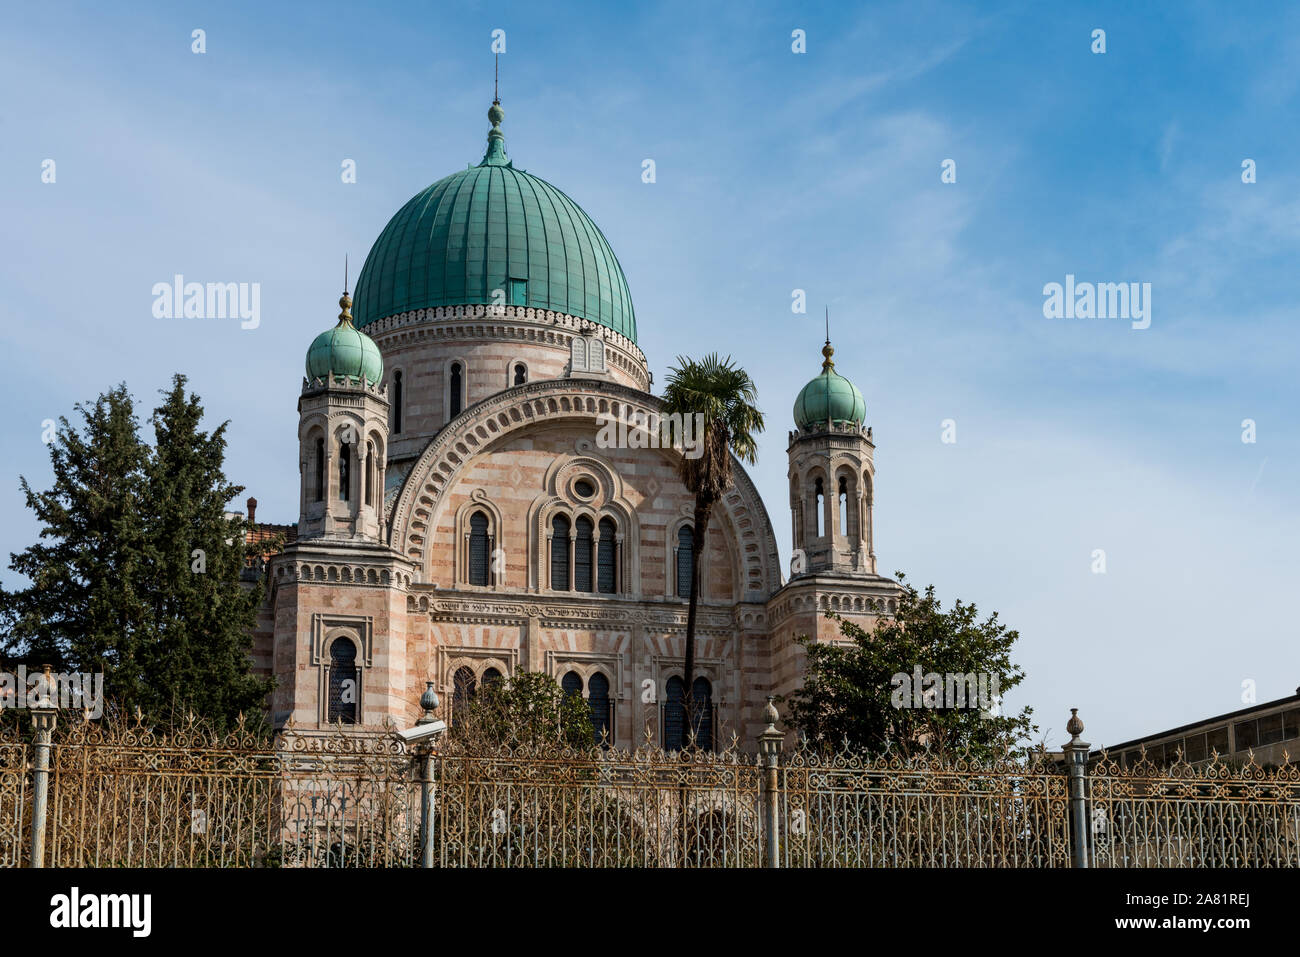 FLORENCE, ITALY - 25, MARCH, 2016: Horizontal picture of beautiful architecture of The Great Synagogue located in  Florence, Italy Stock Photo